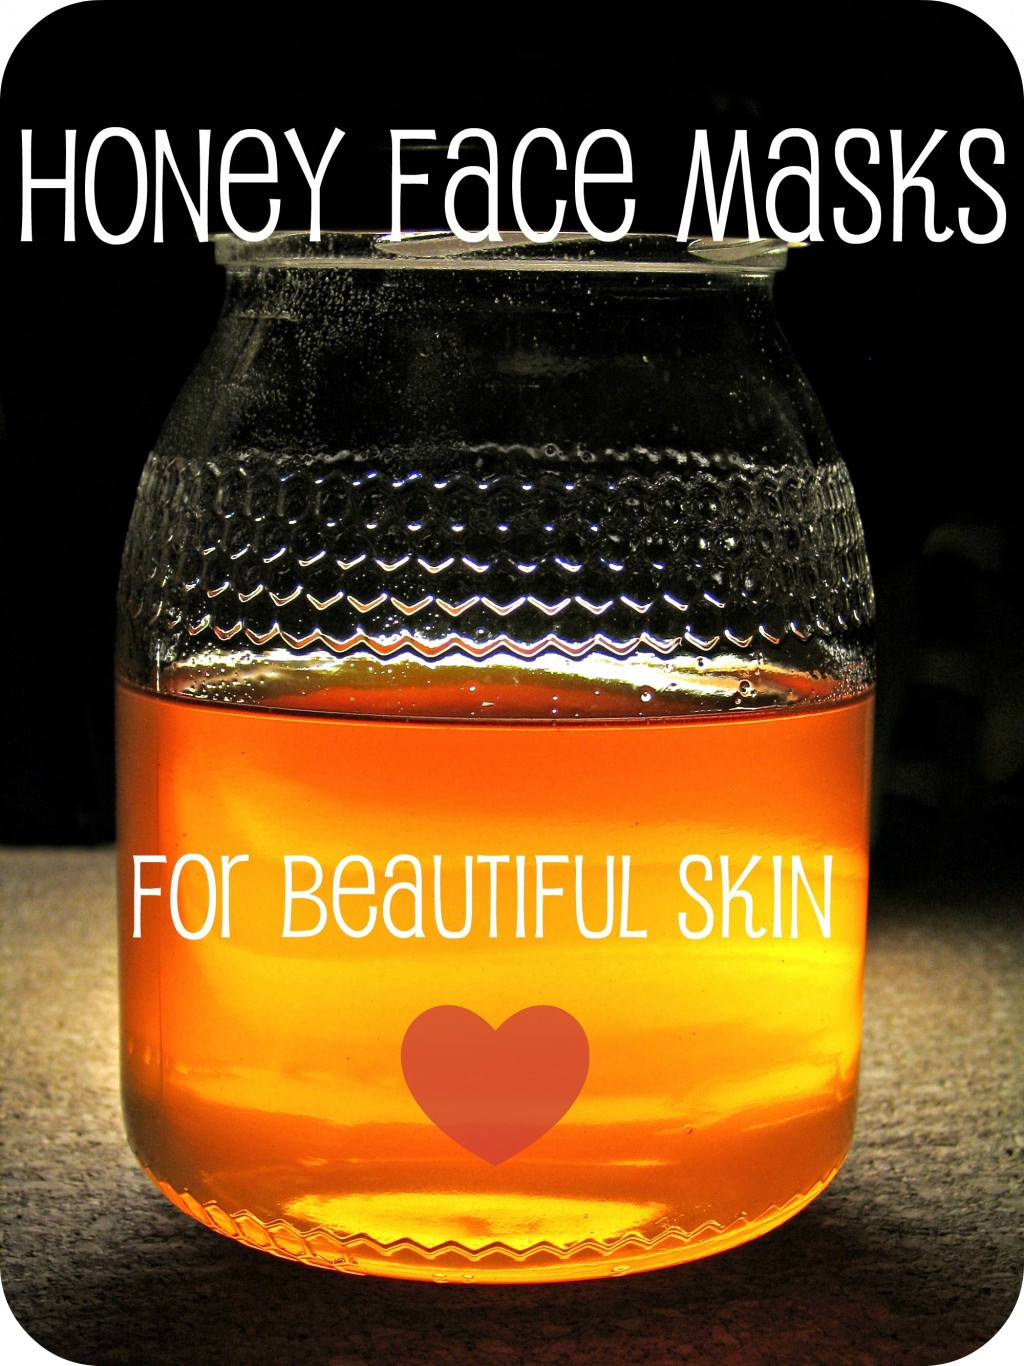 Best ideas about DIY Honey Mask . Save or Pin Homemade Honey Face Mask Recipes for Beautiful Skin Now.